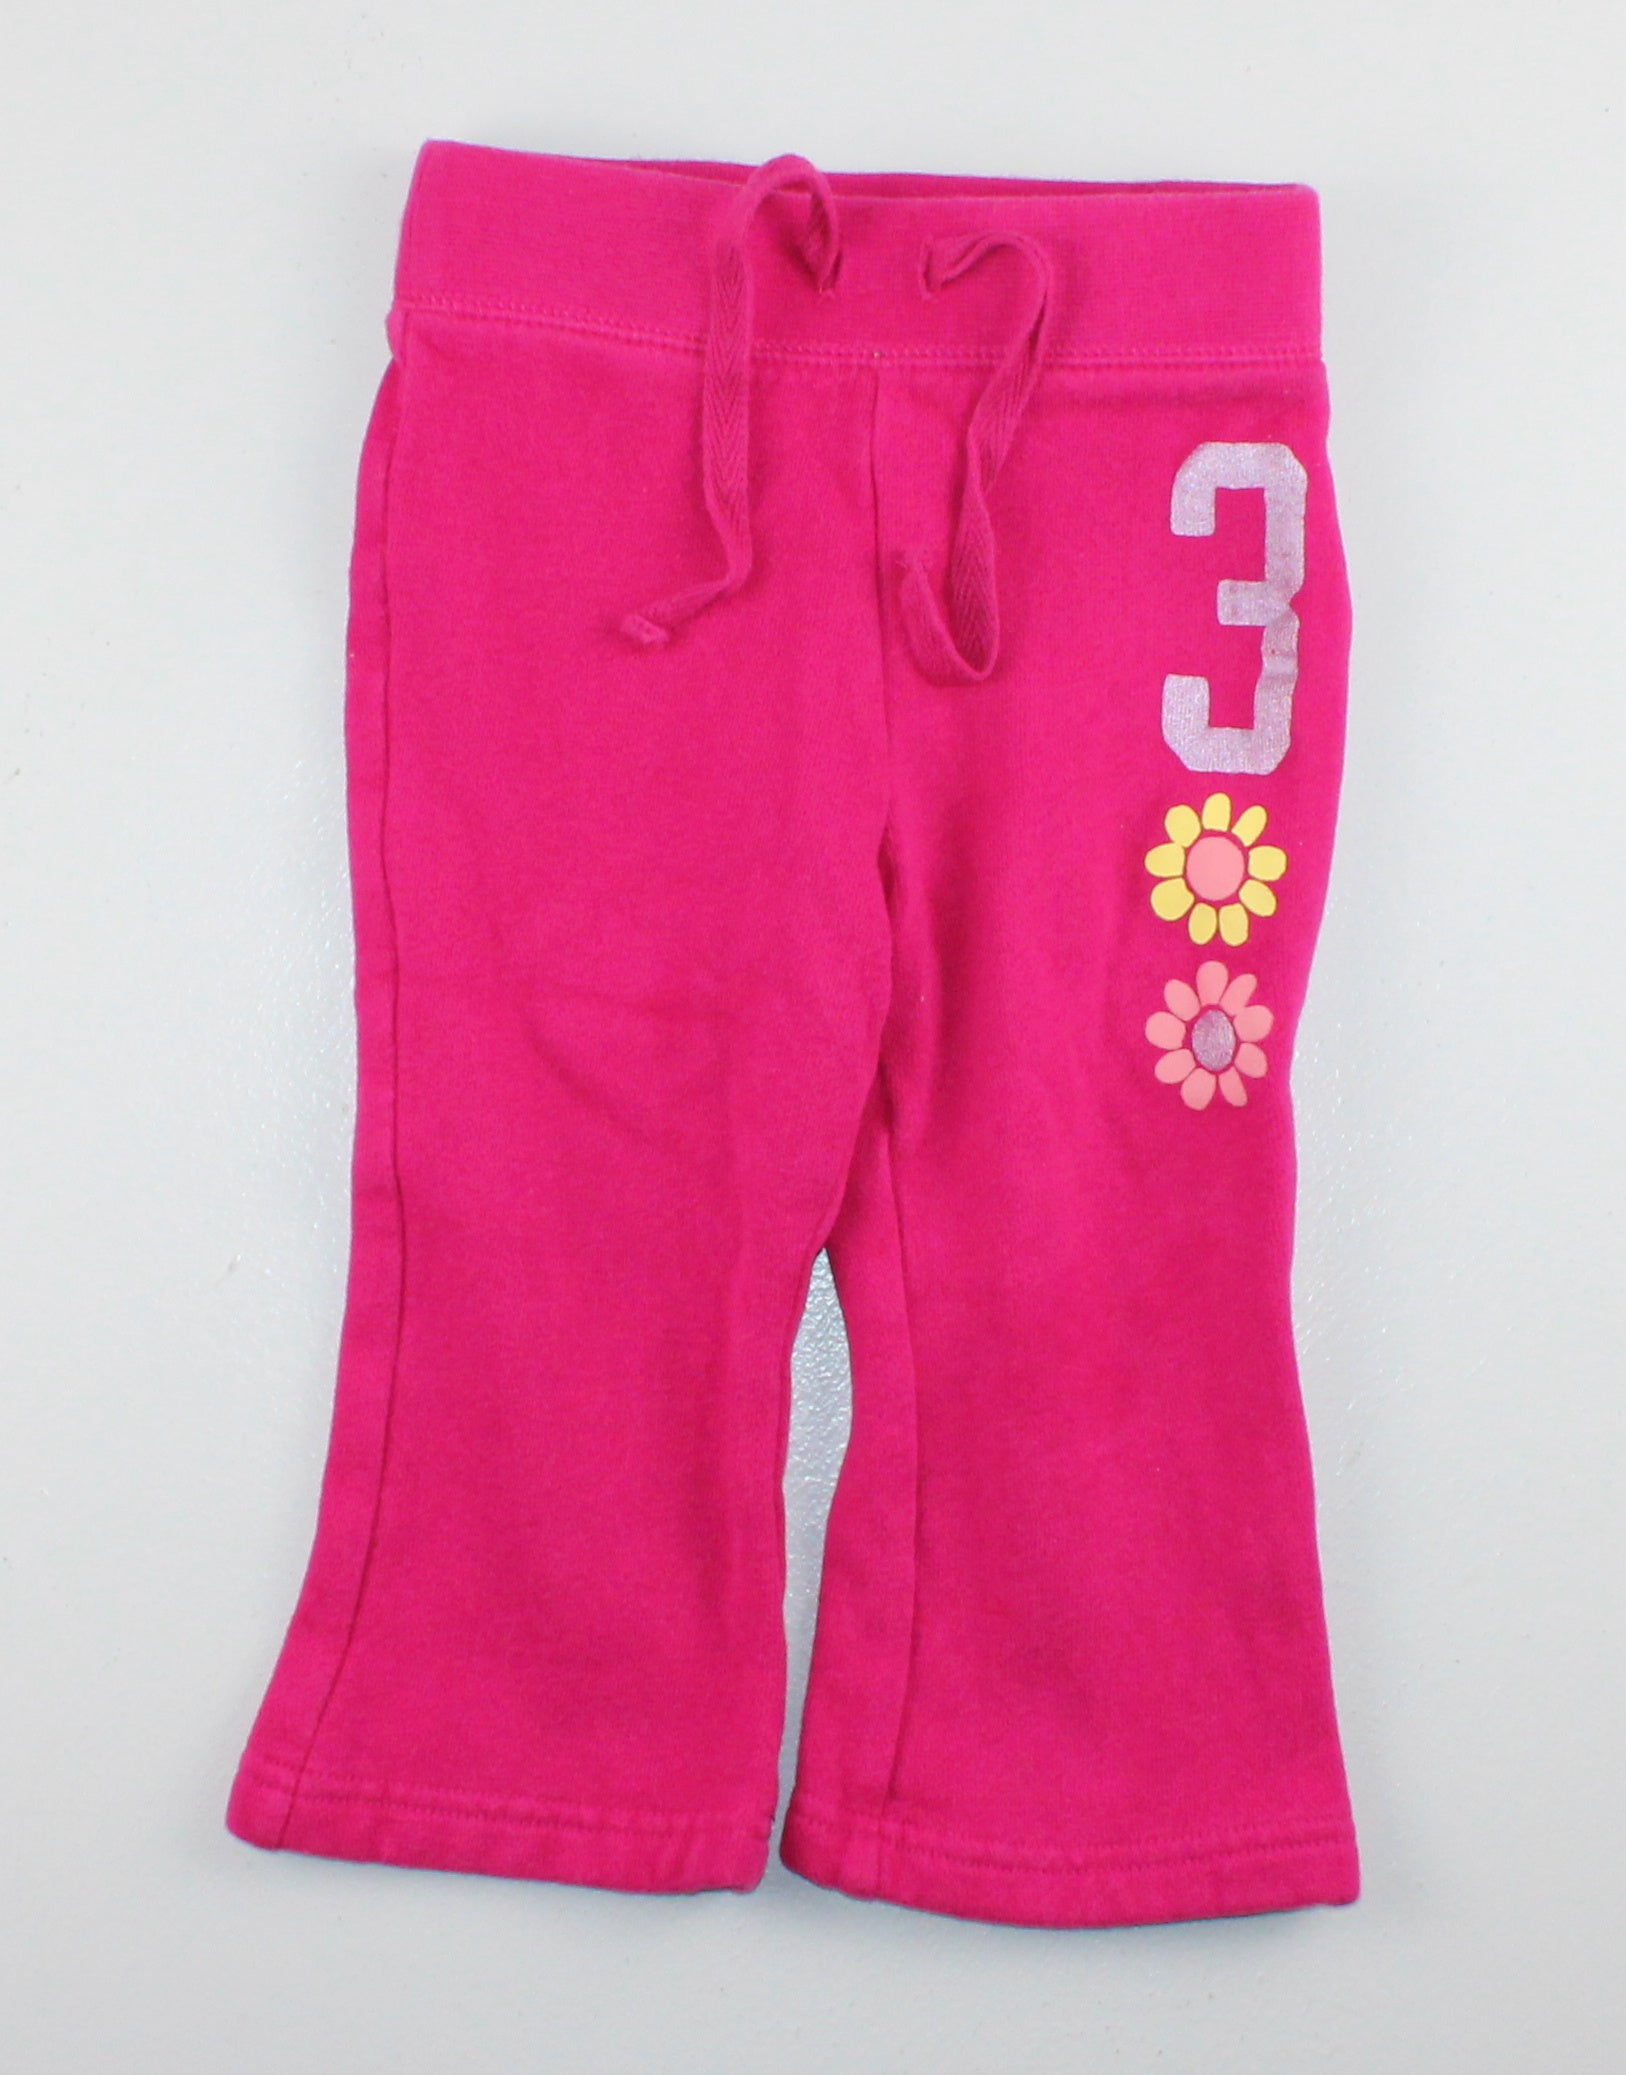 OLD NAVY PINK #3 TRACK PANTS 12-18M EUC